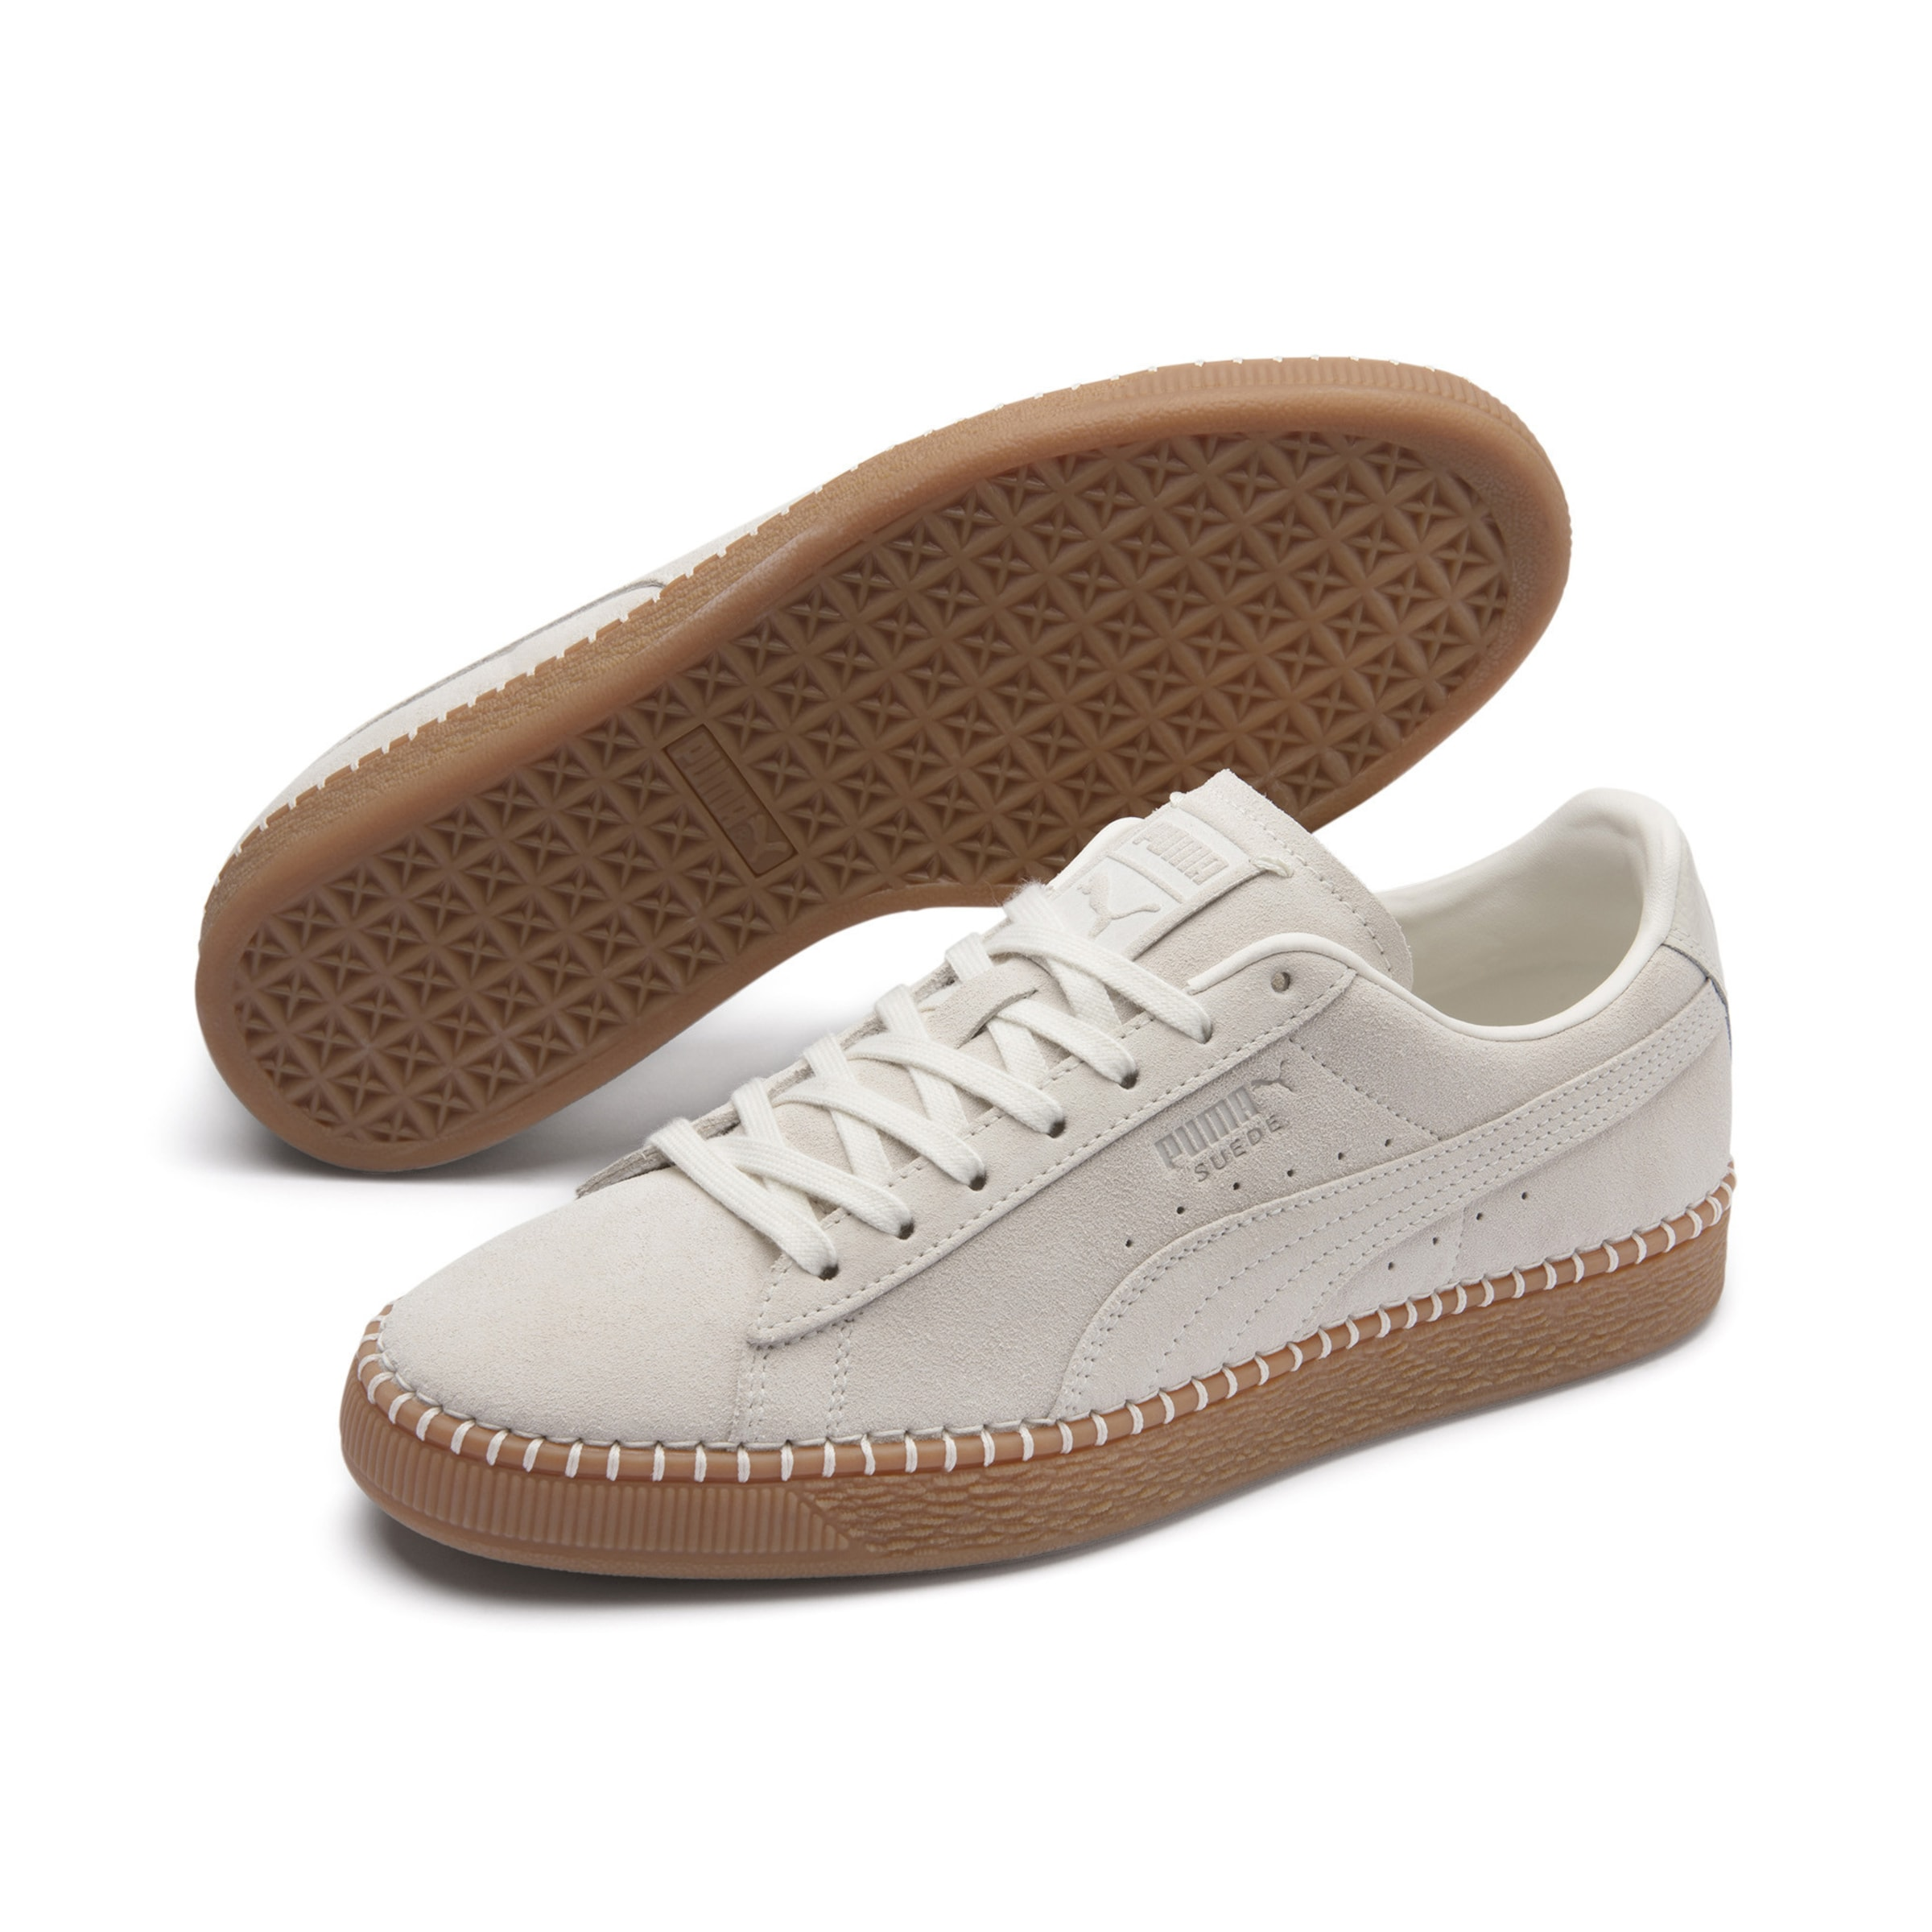 In Stitch' Puma Blanket Classic 'suede Sneaker Offwhite mOwN80vnyP